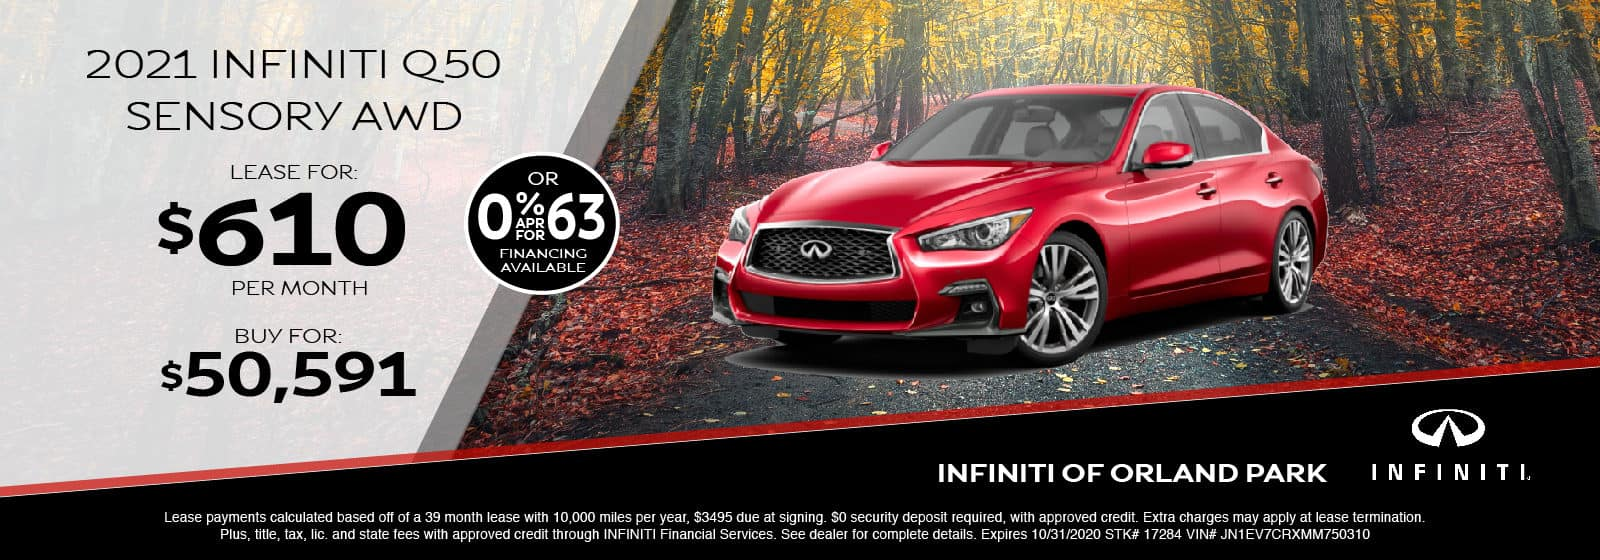 Lease a new 2021 Q50 for $610/month